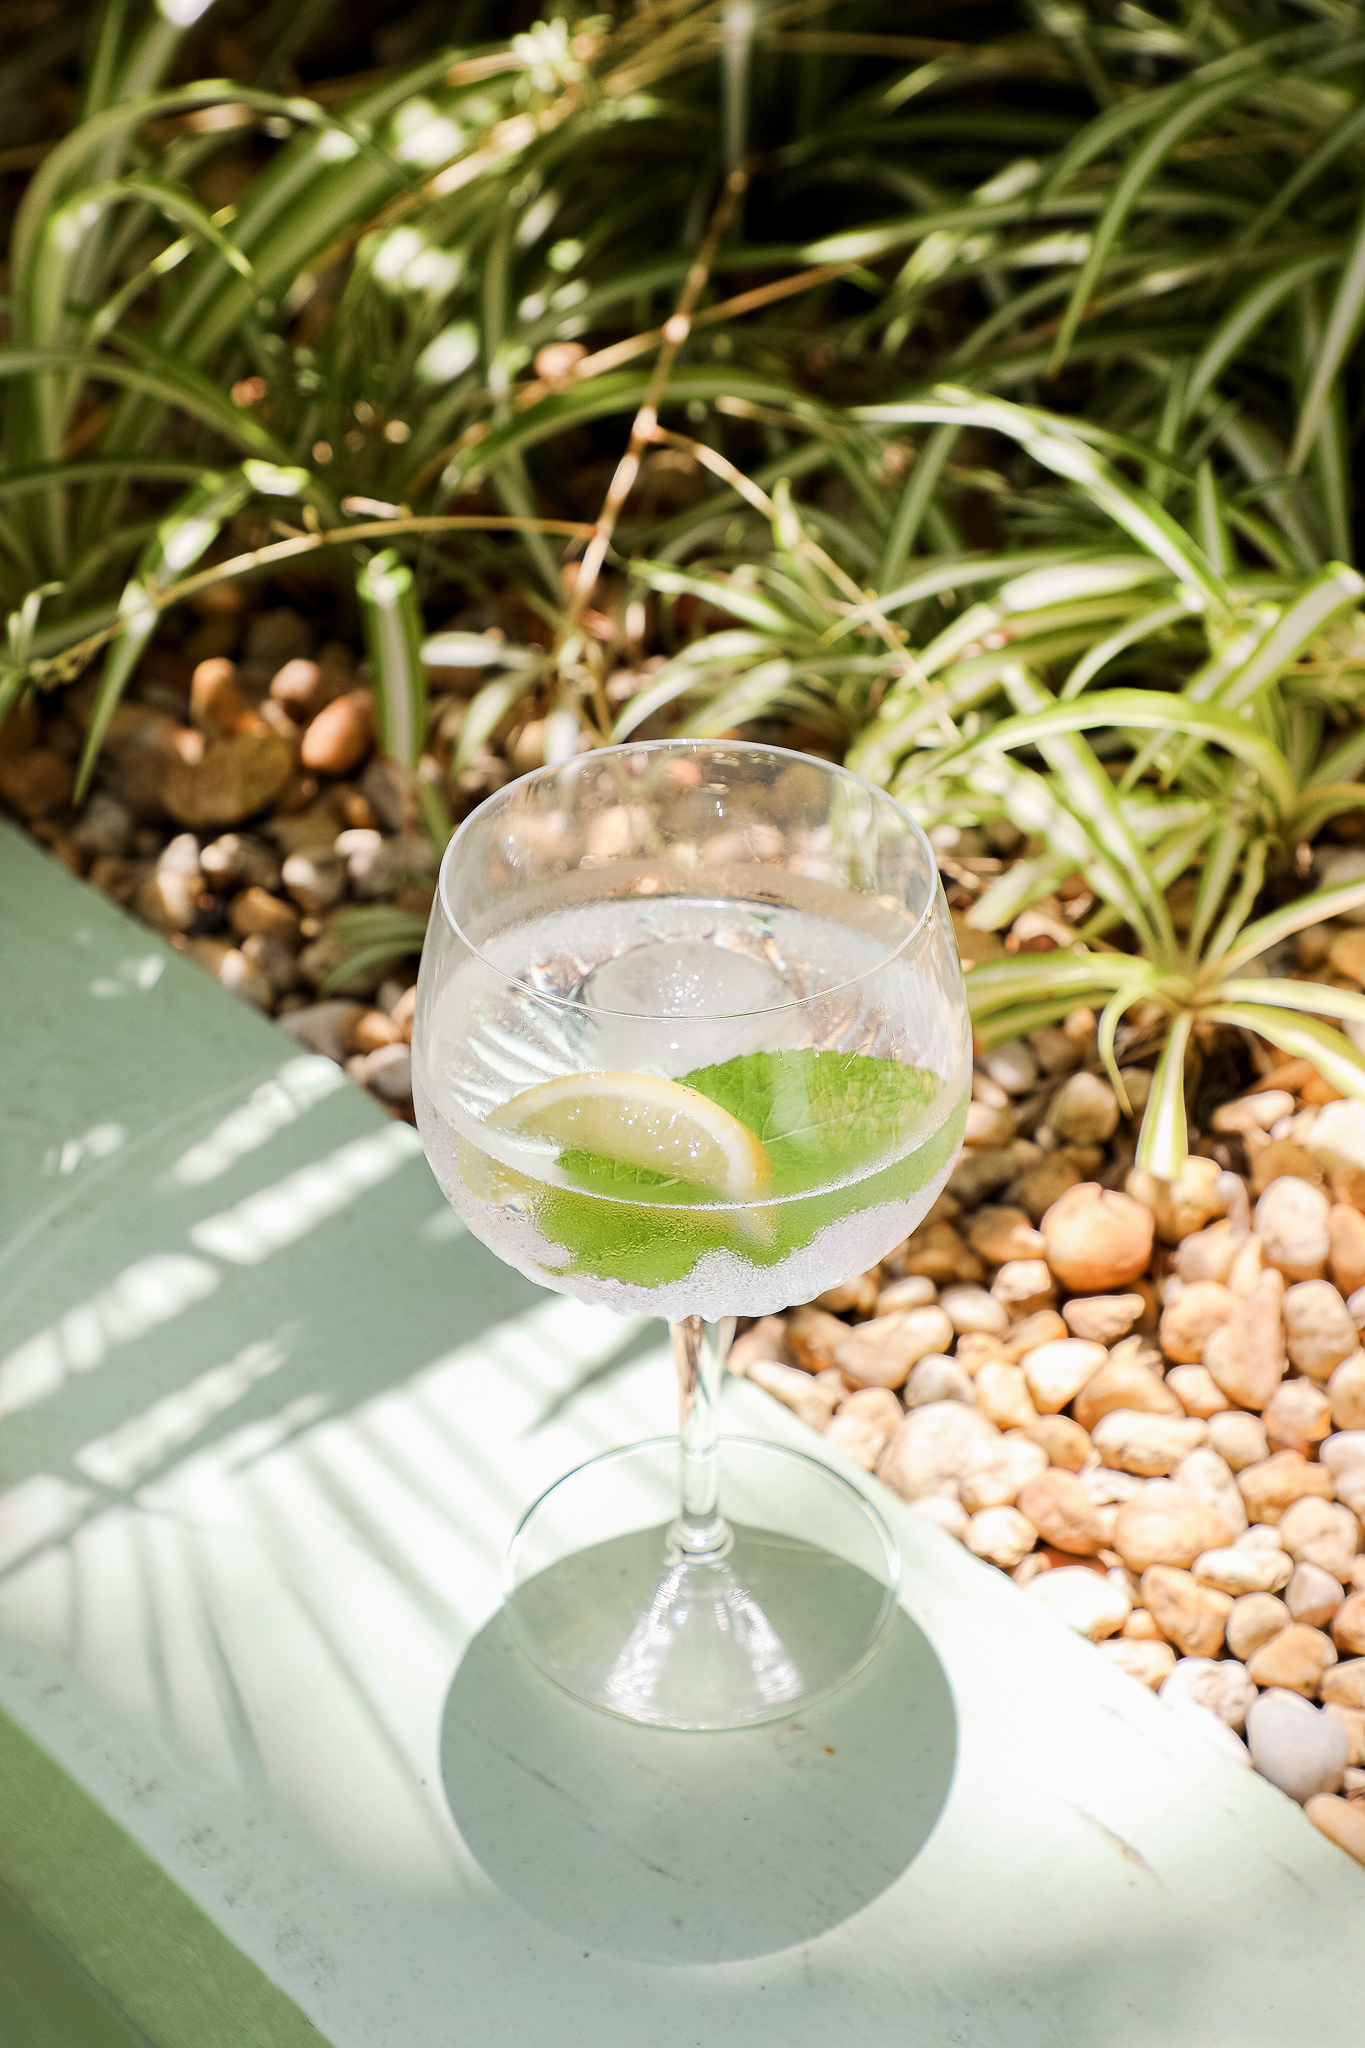 A gin drink with lime photographed outside next to plants.